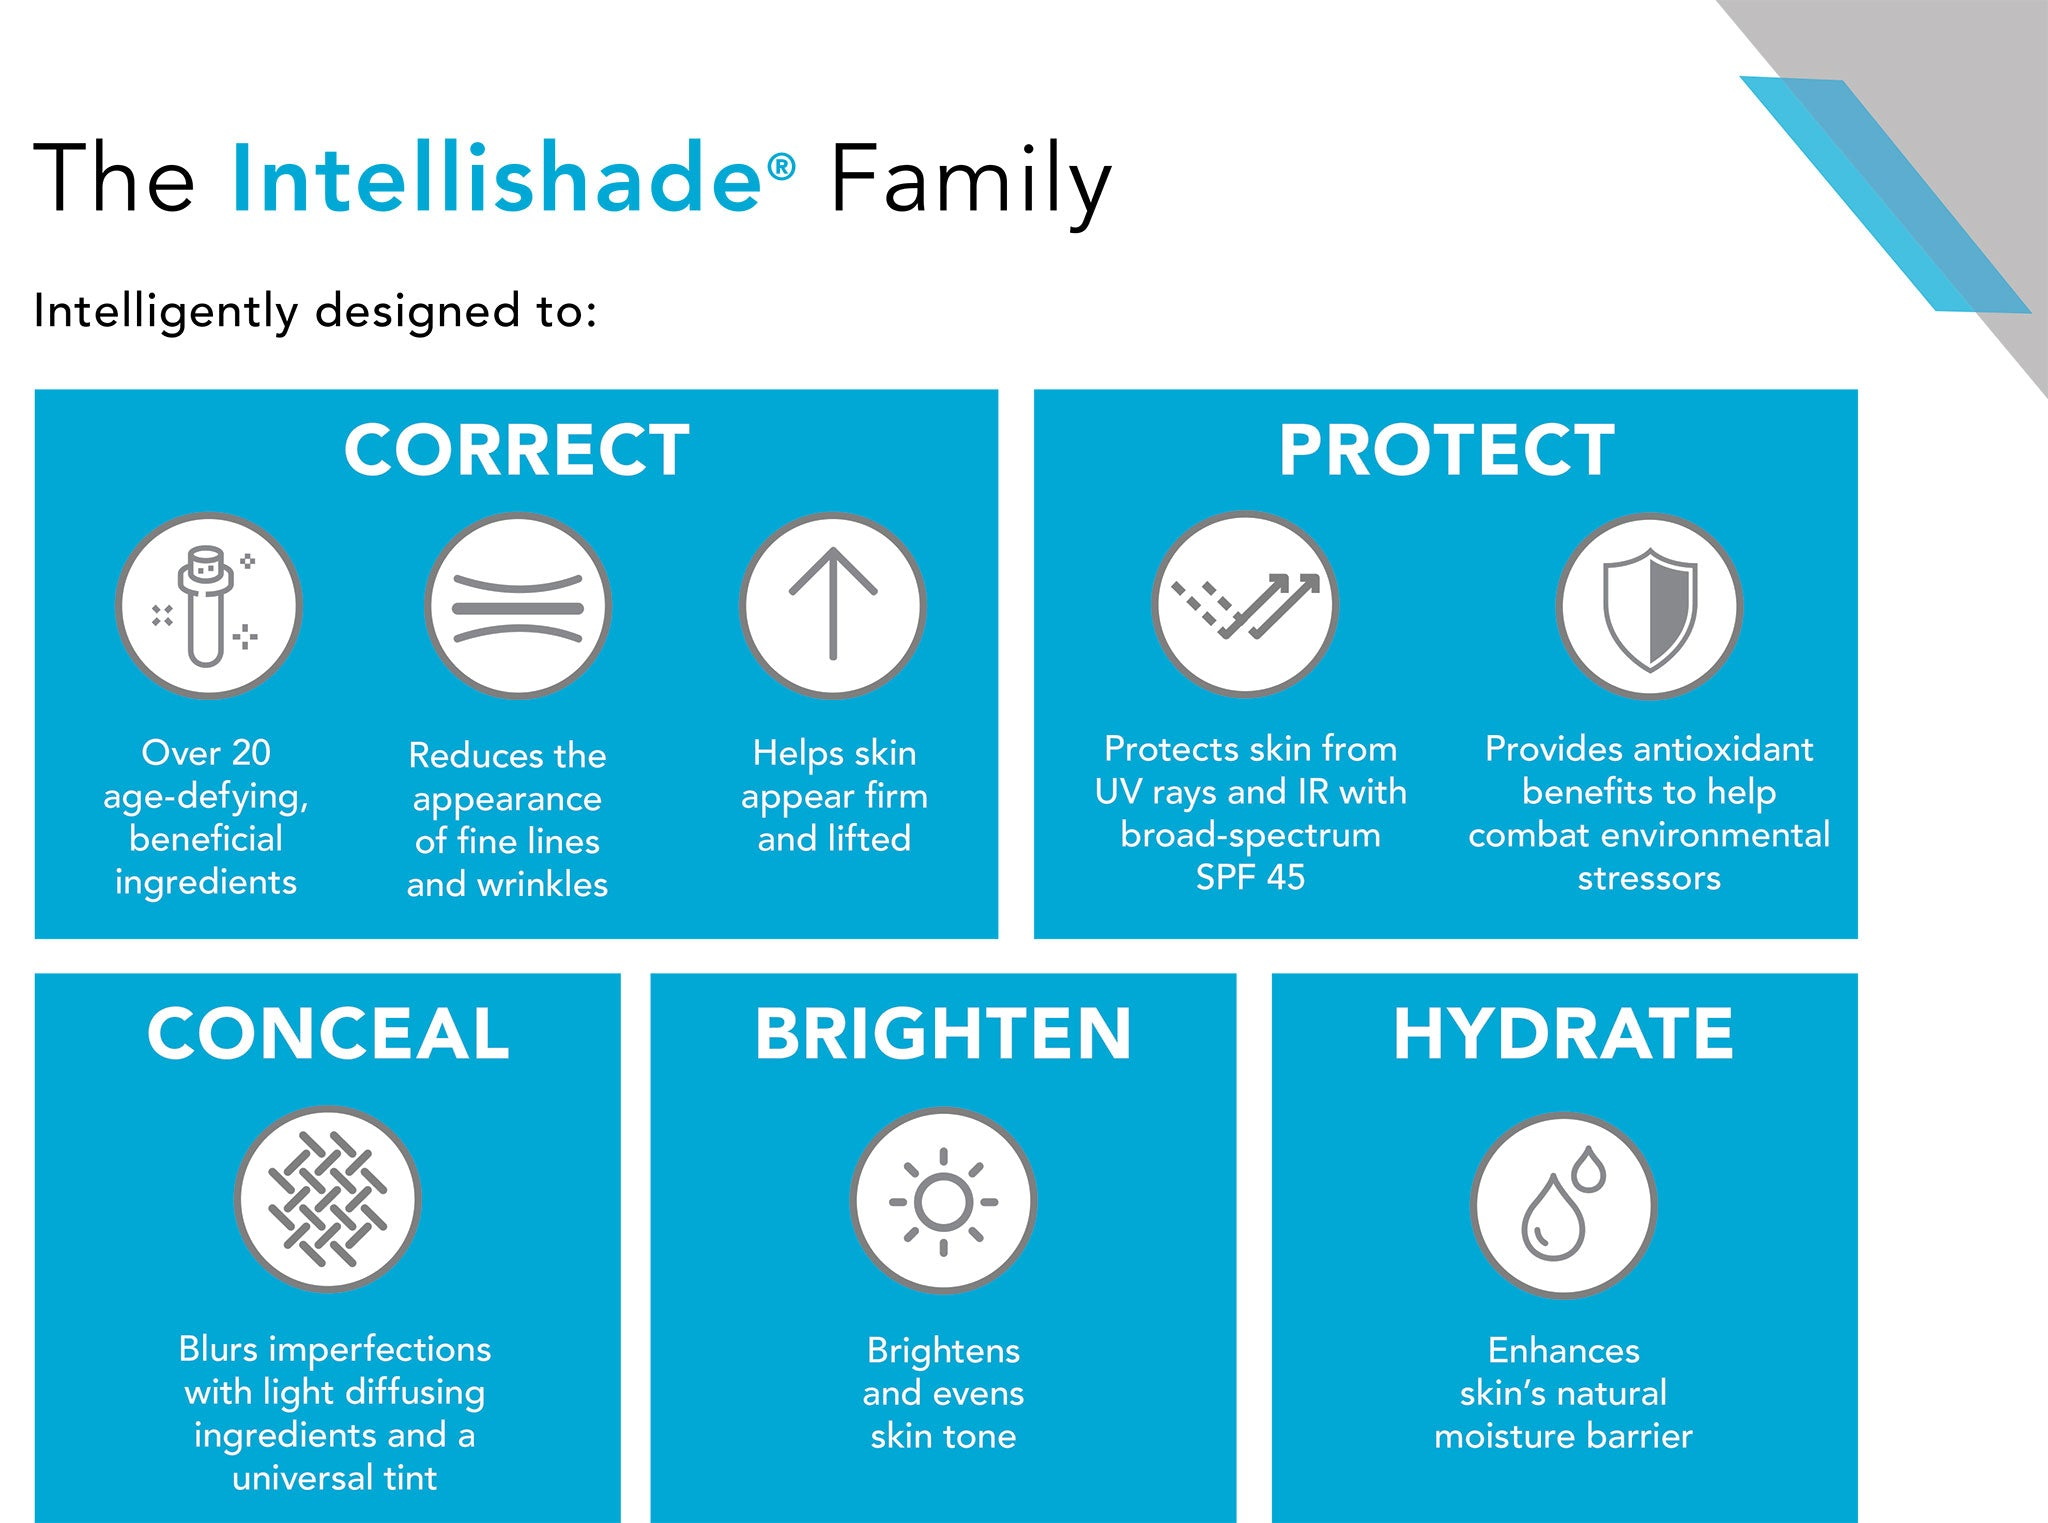 Intellishade Original- Right For You